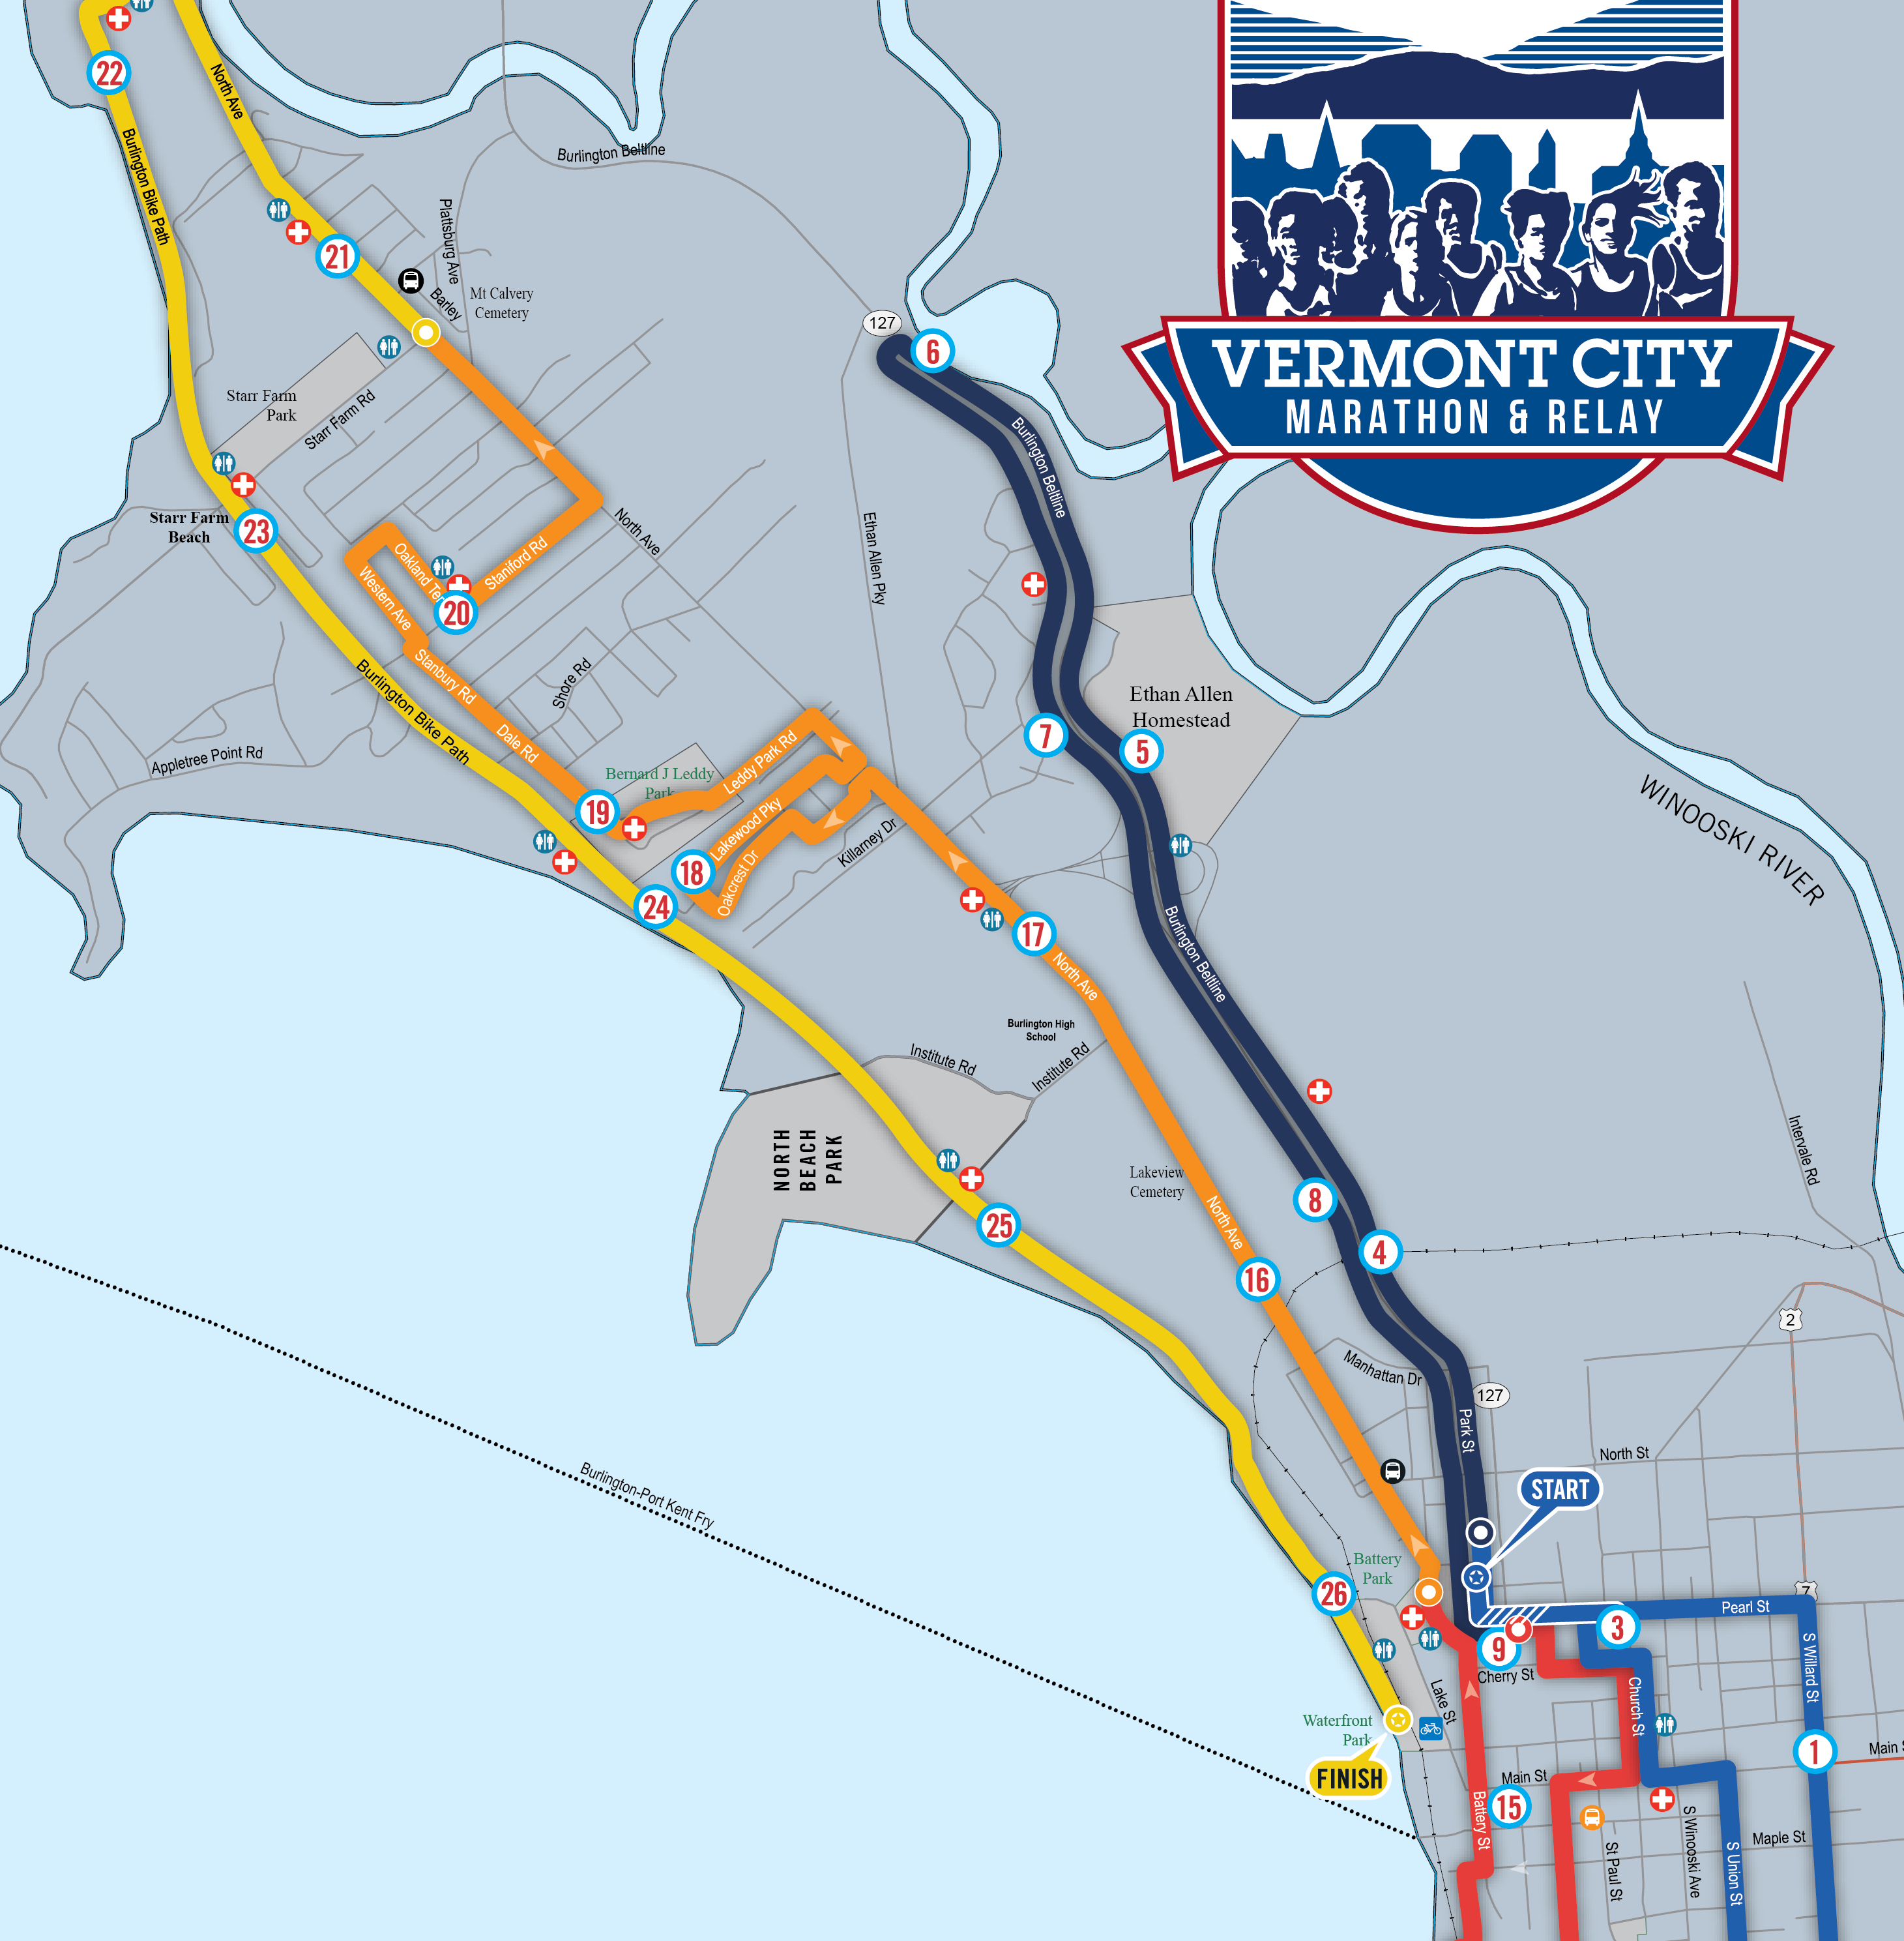 Vermont City Marathon: Course map, finish area for the 2019 race